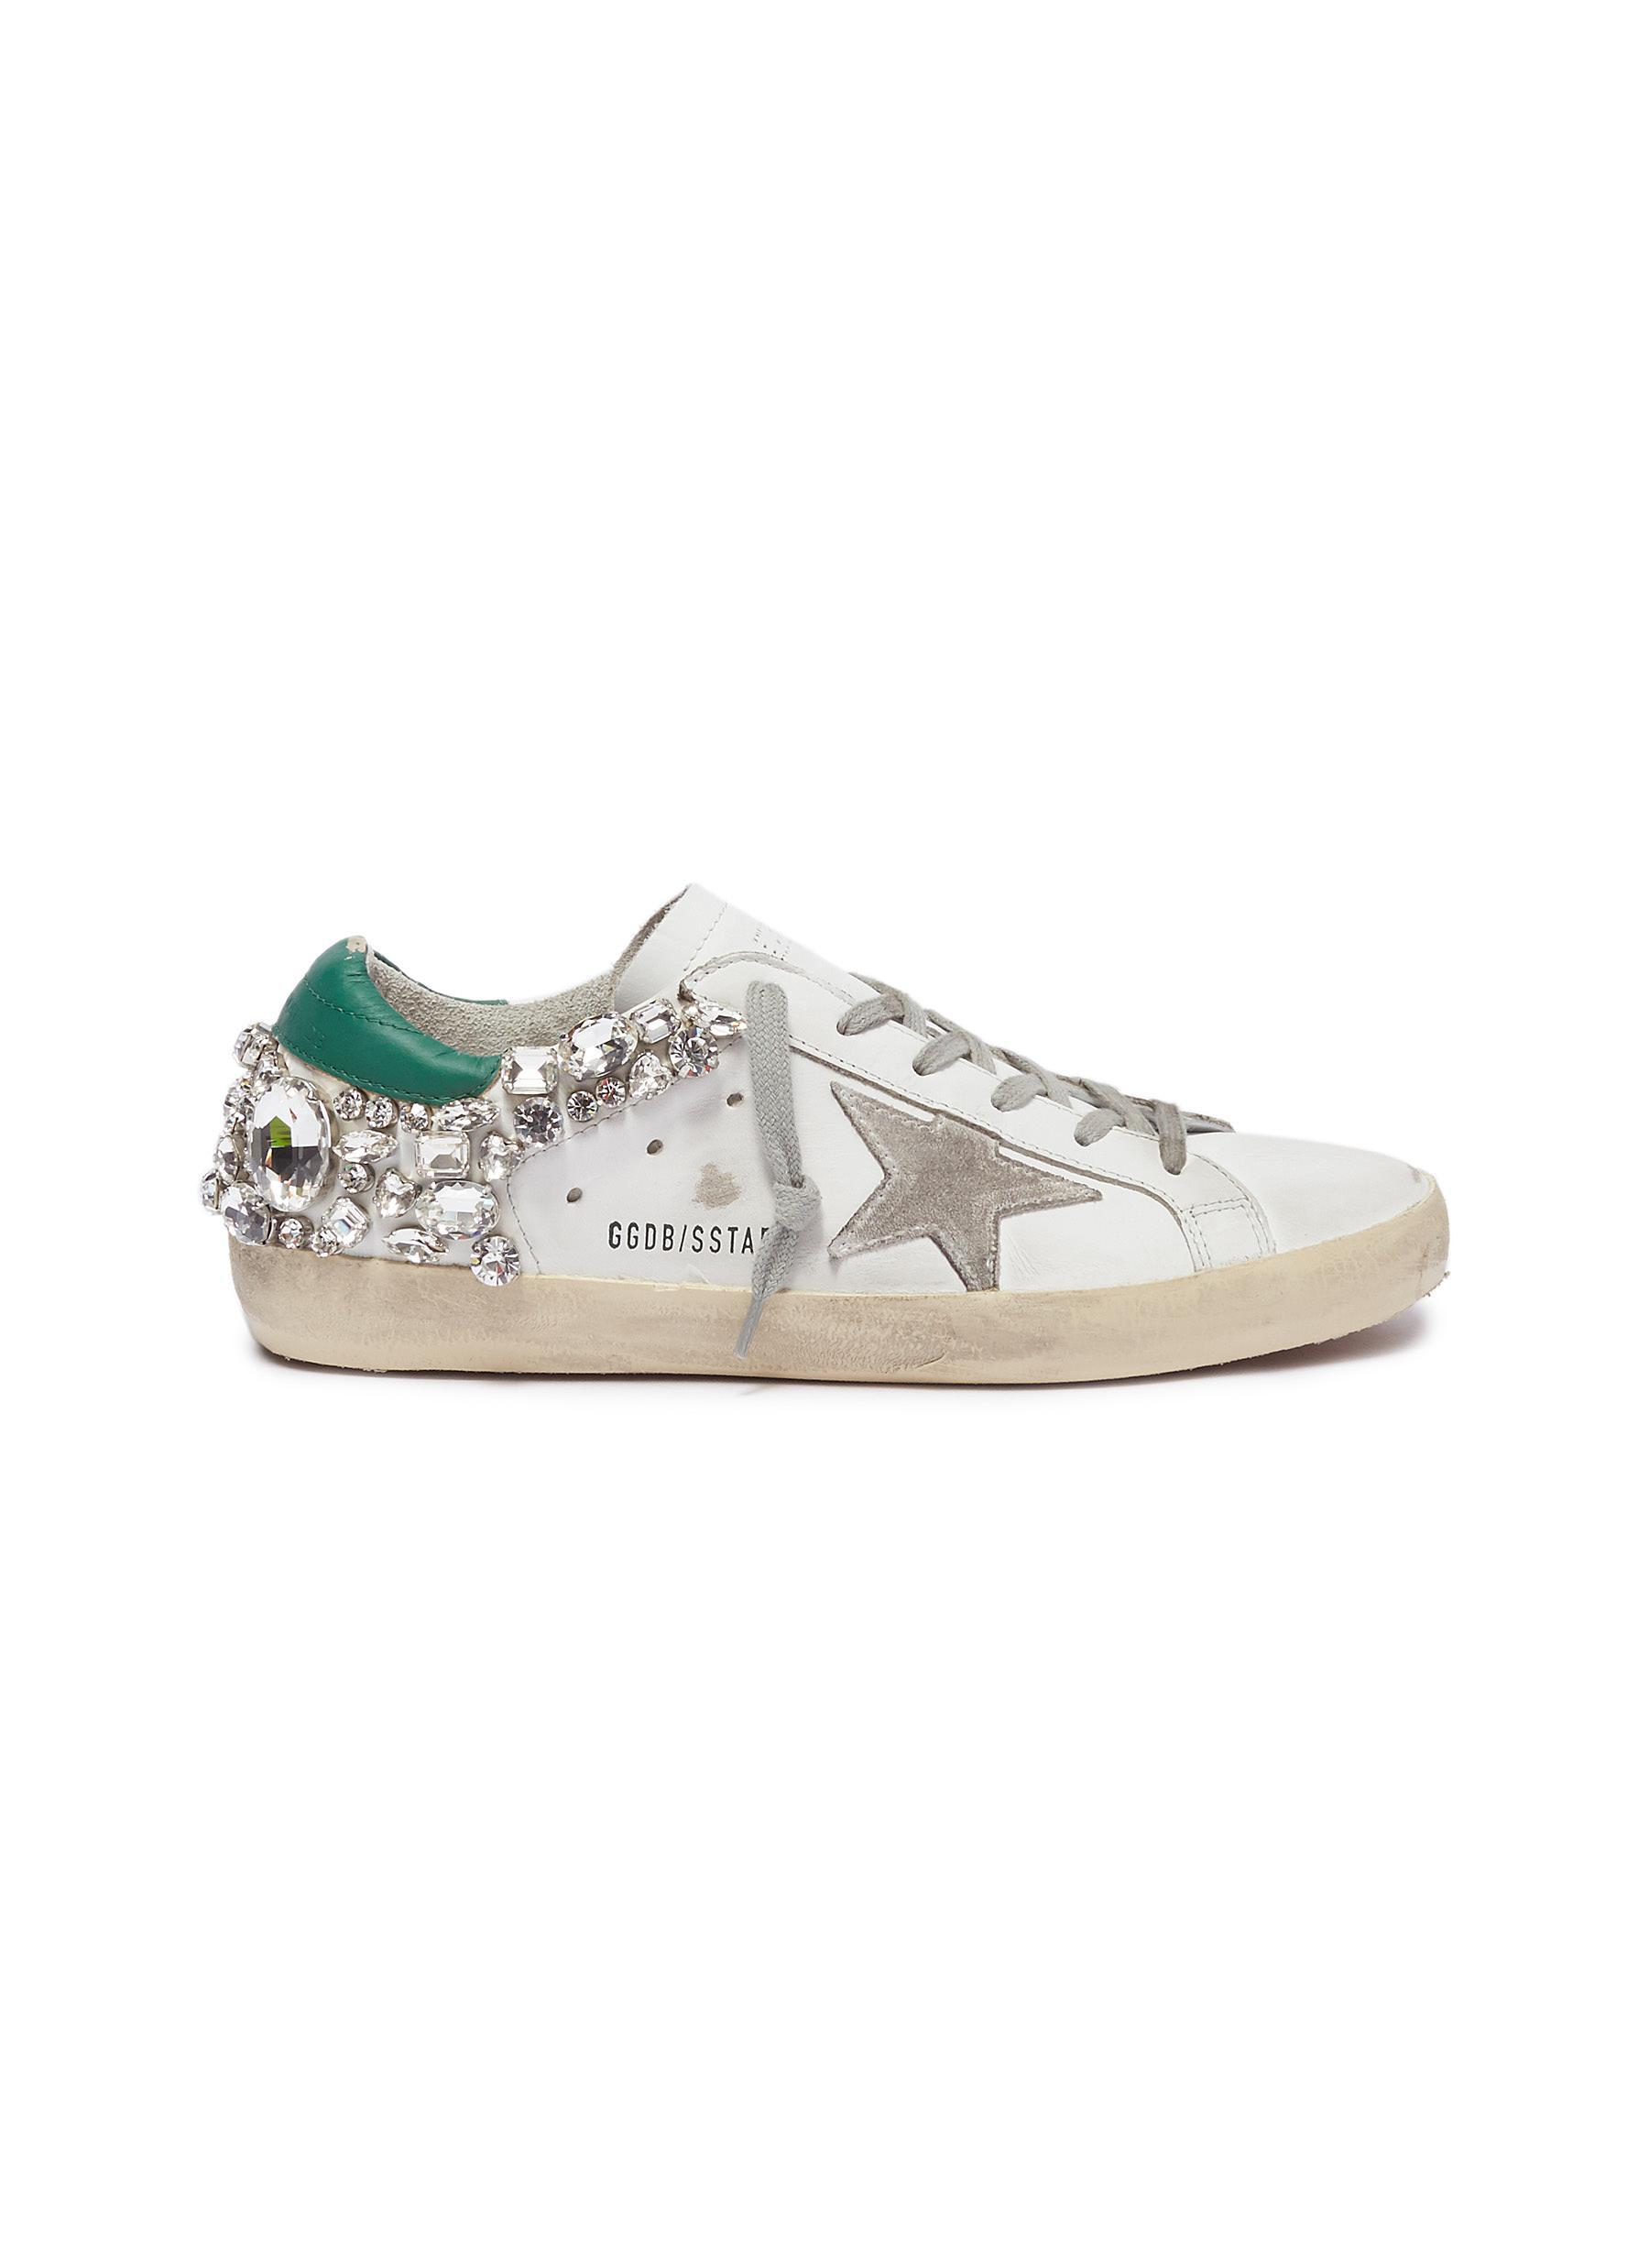 Golden Goose Deluxe Brand. Women's White 'superstar' Strass Leather Sneakers